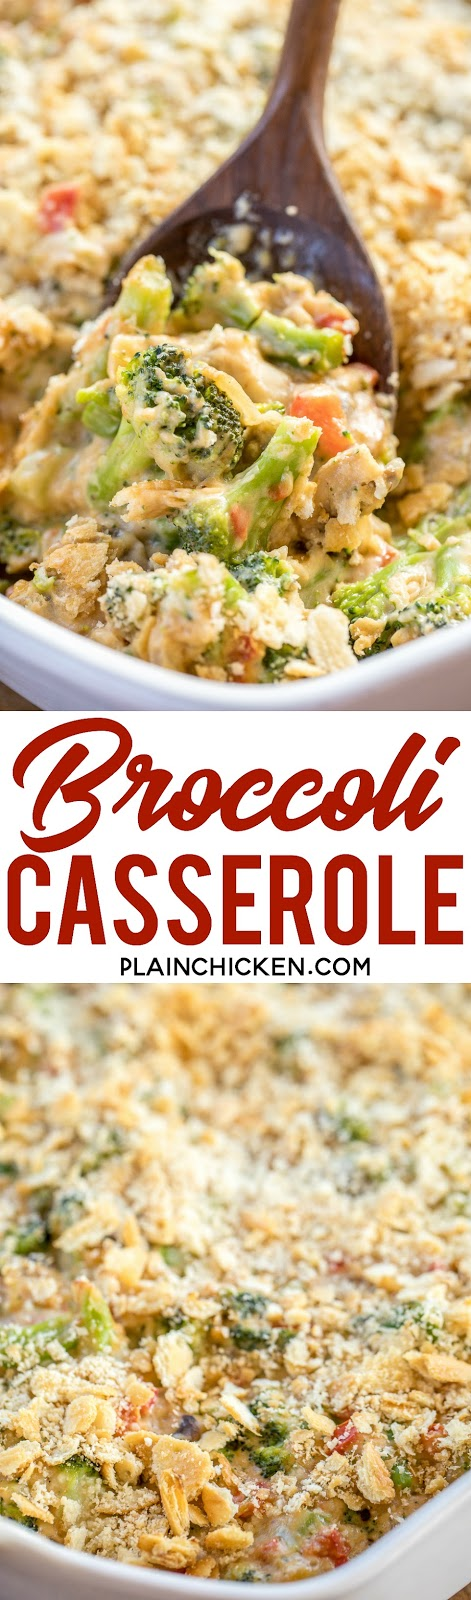 Broccoli Casserole - NO cream of anything soup!! Loaded with broccoli, onion, red bell pepper and mushrooms. Top with cheddar AND parmesan cheese! This is seriously DELICIOUS! Can make ahead and refrigerate or freeze for later!  Onion, red bell pepper, mushrooms, salt, pepper, flour, milk, cheddar, parmesan, broccoli, ritz crackers, butter. #broccoli #casserole #sidedish